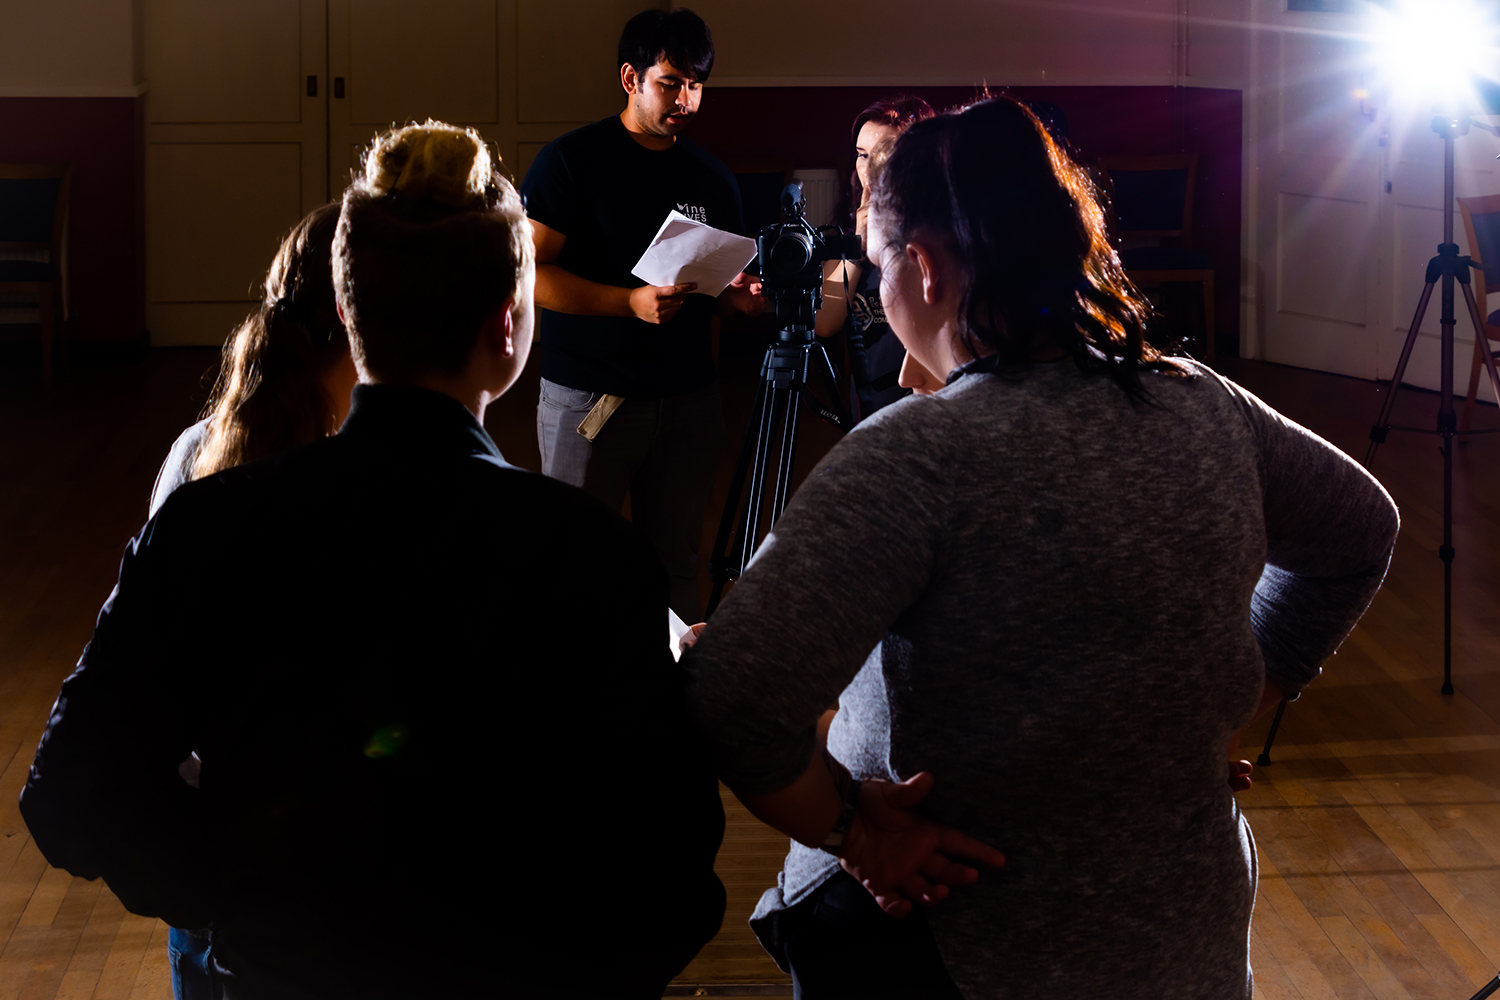 A filming session at Nine Lives Theatre Company.